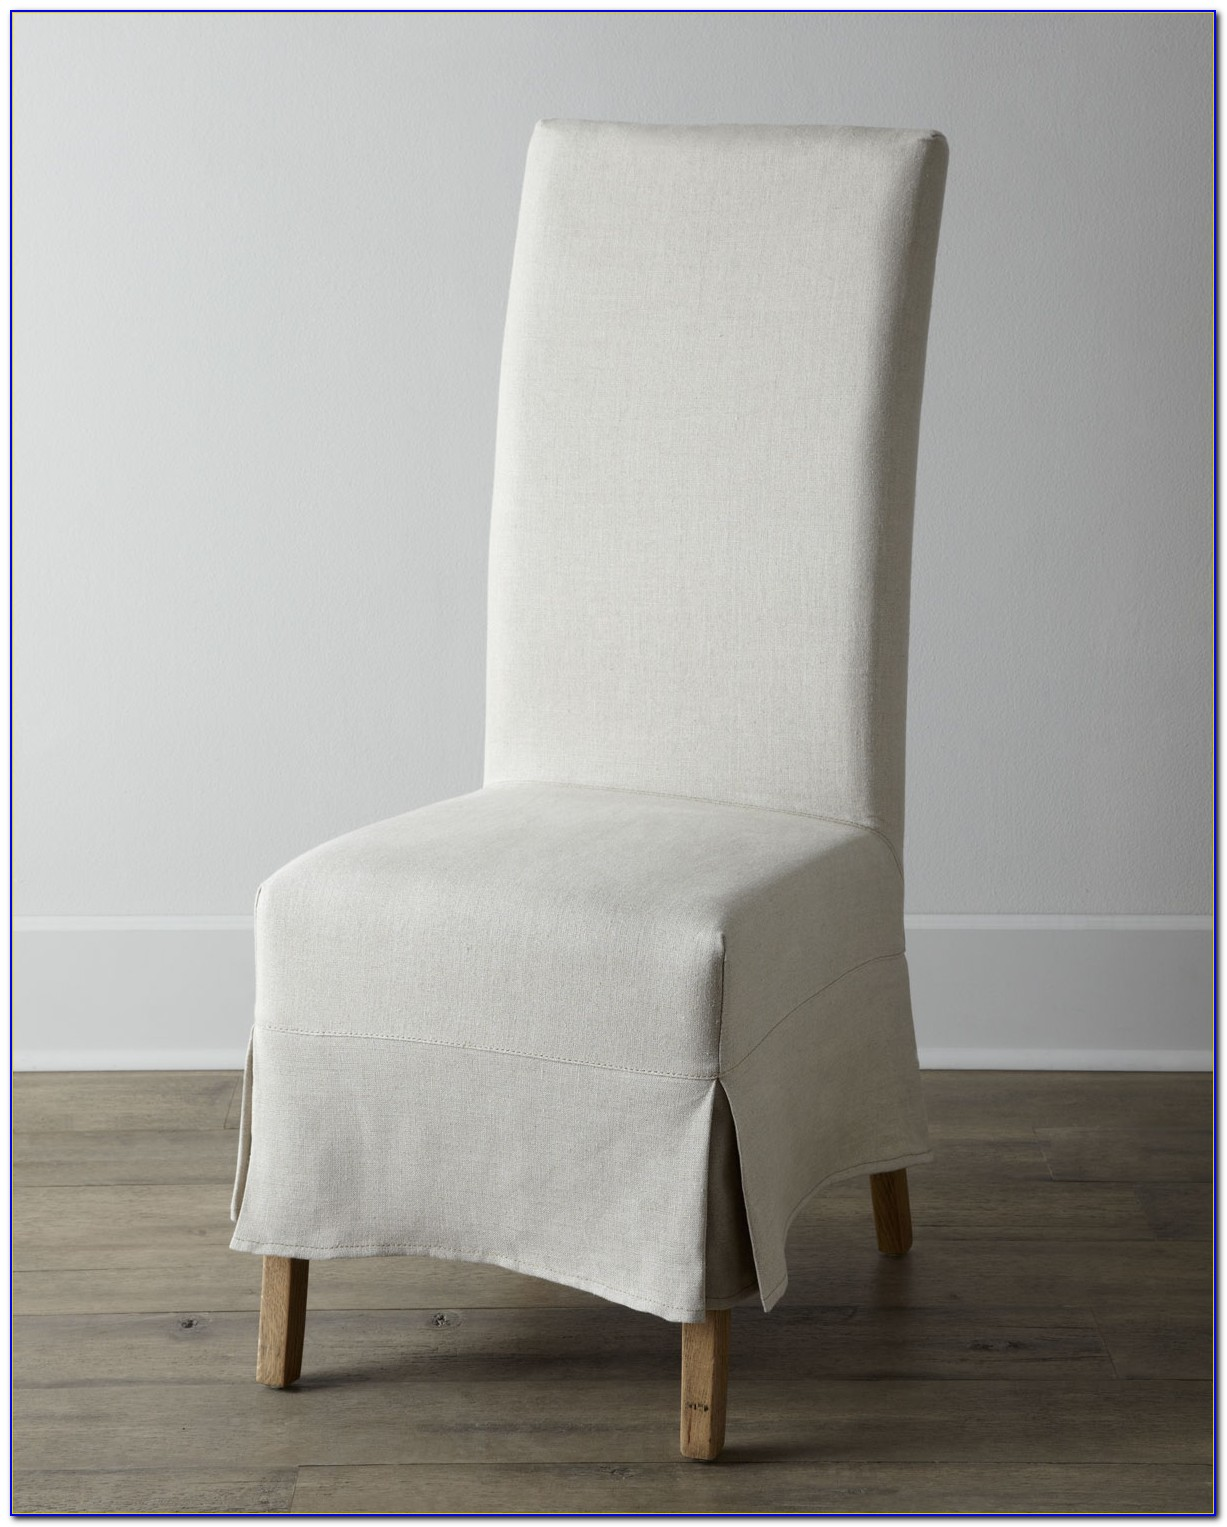 Slipcover For Chair Without Arms